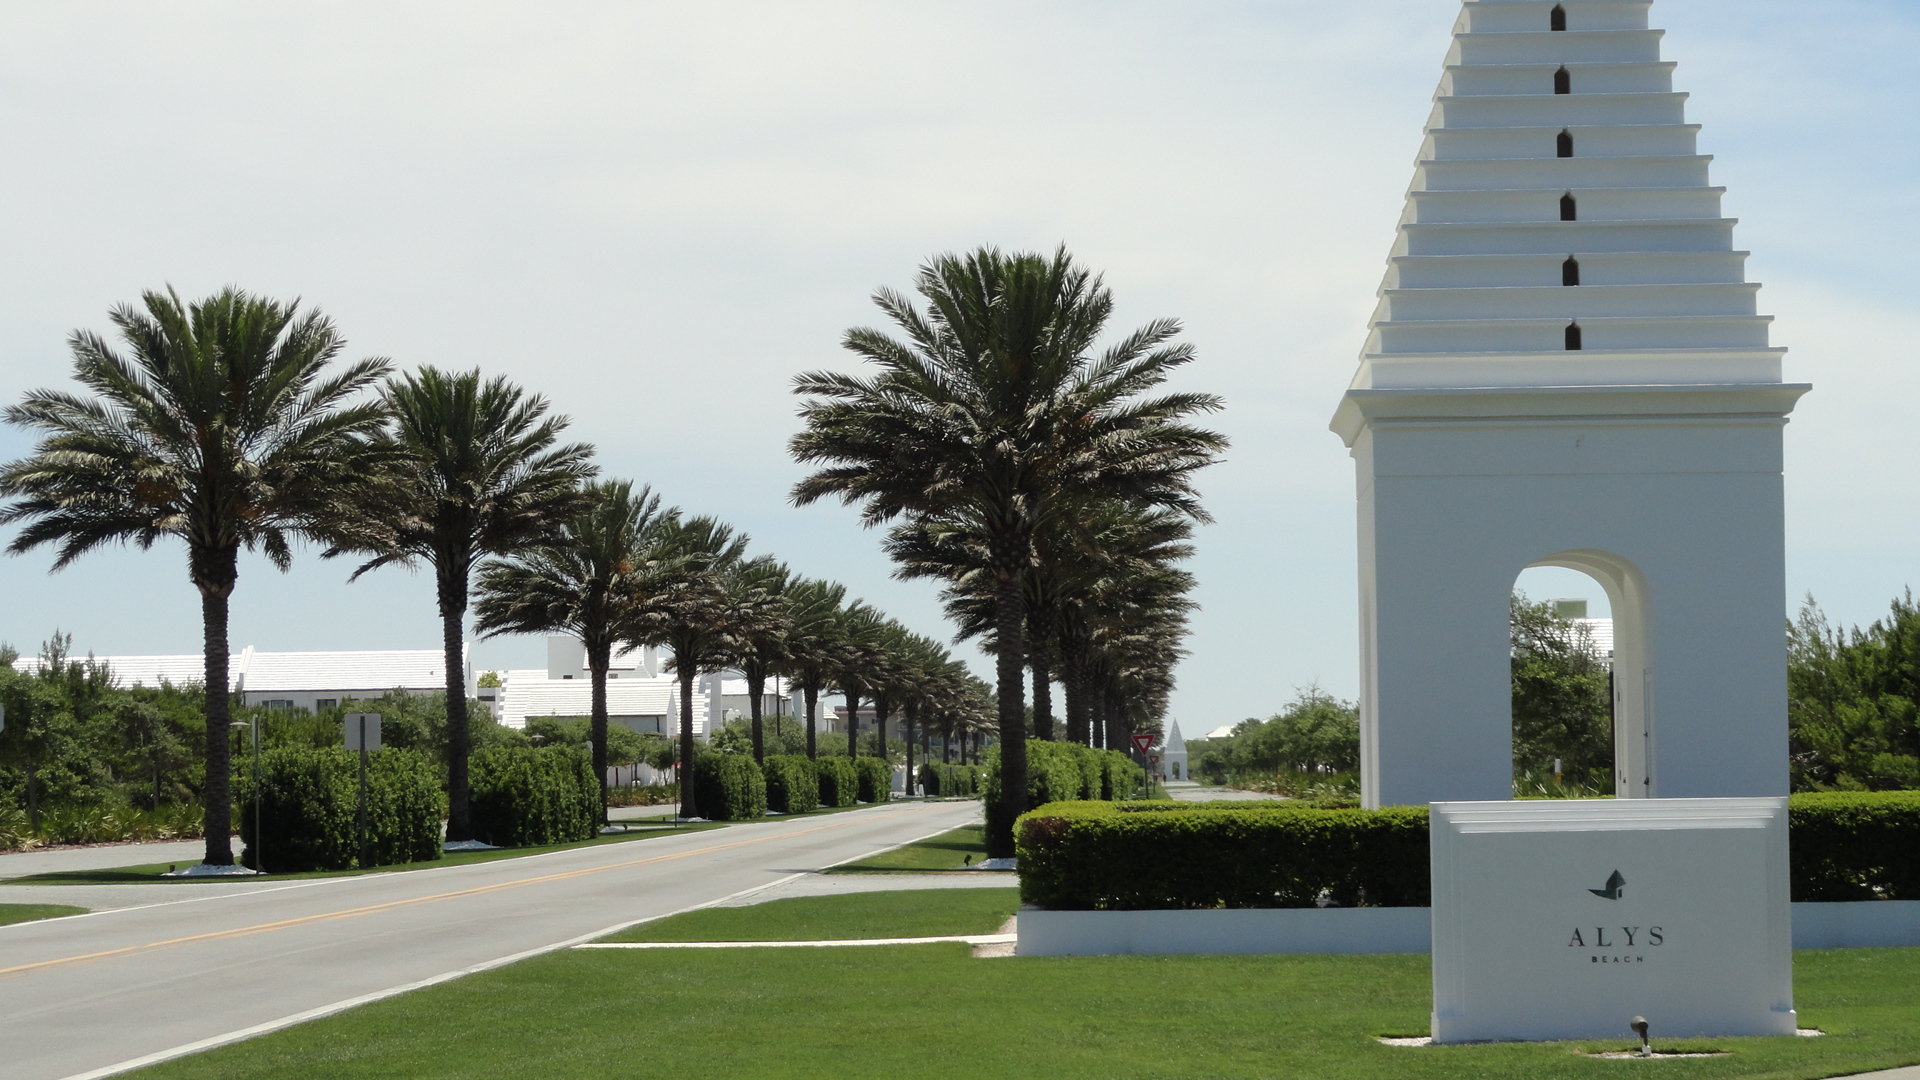 Towering Palms Alys Beach Entrance